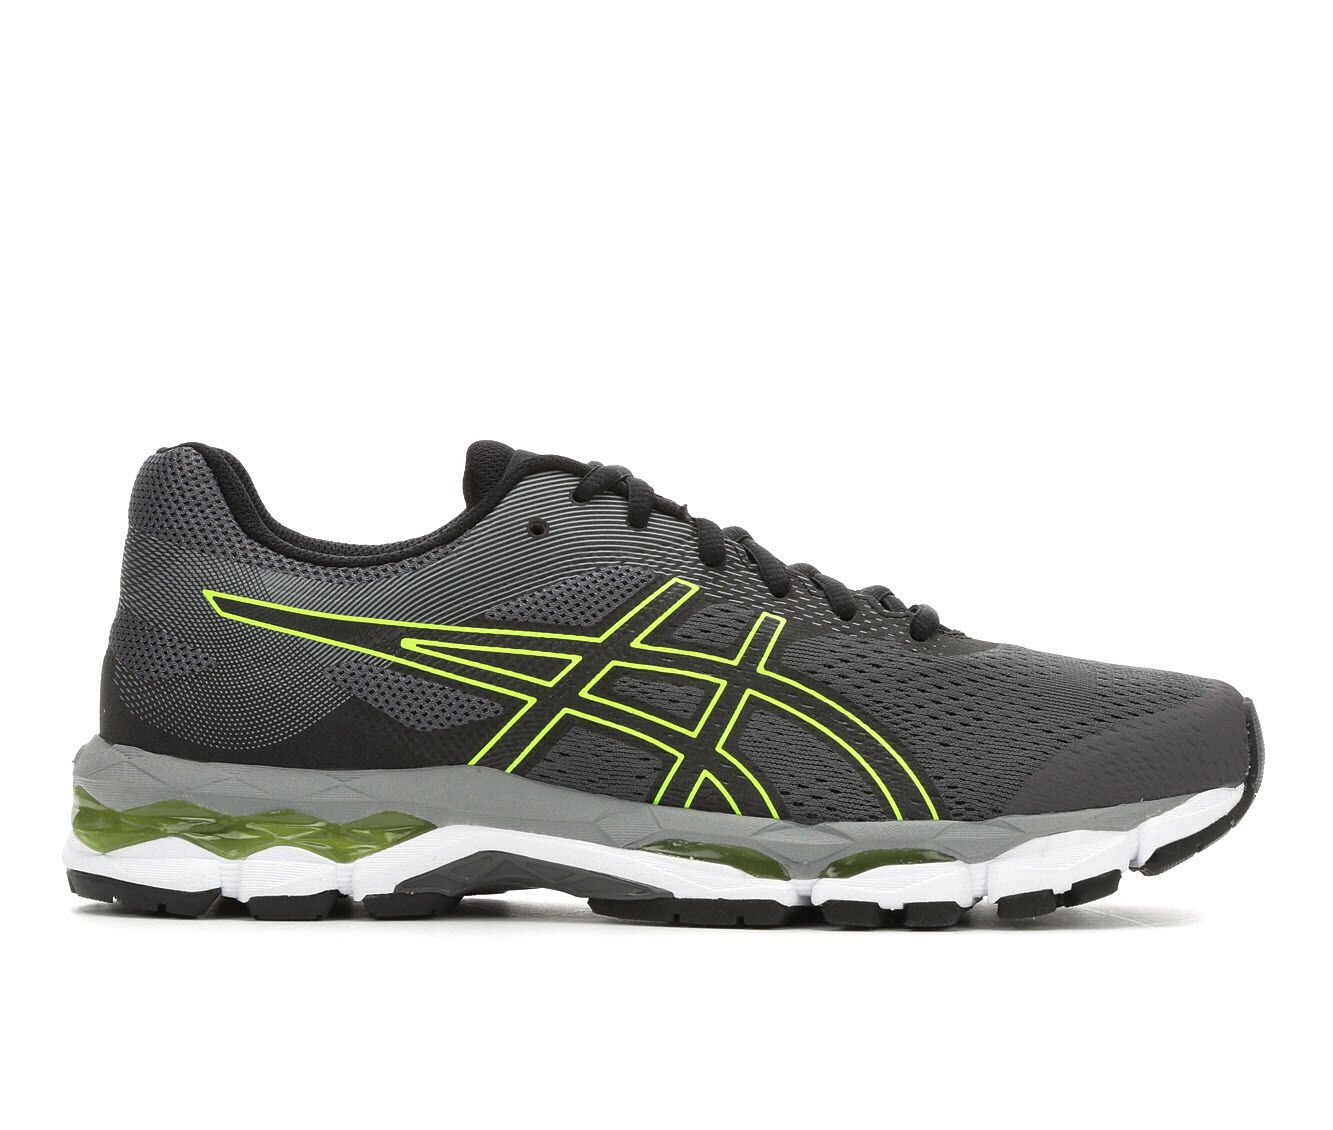 Men's ASICS Gel Superion 2 Running Shoes Gry/Grn/Bk/Wh